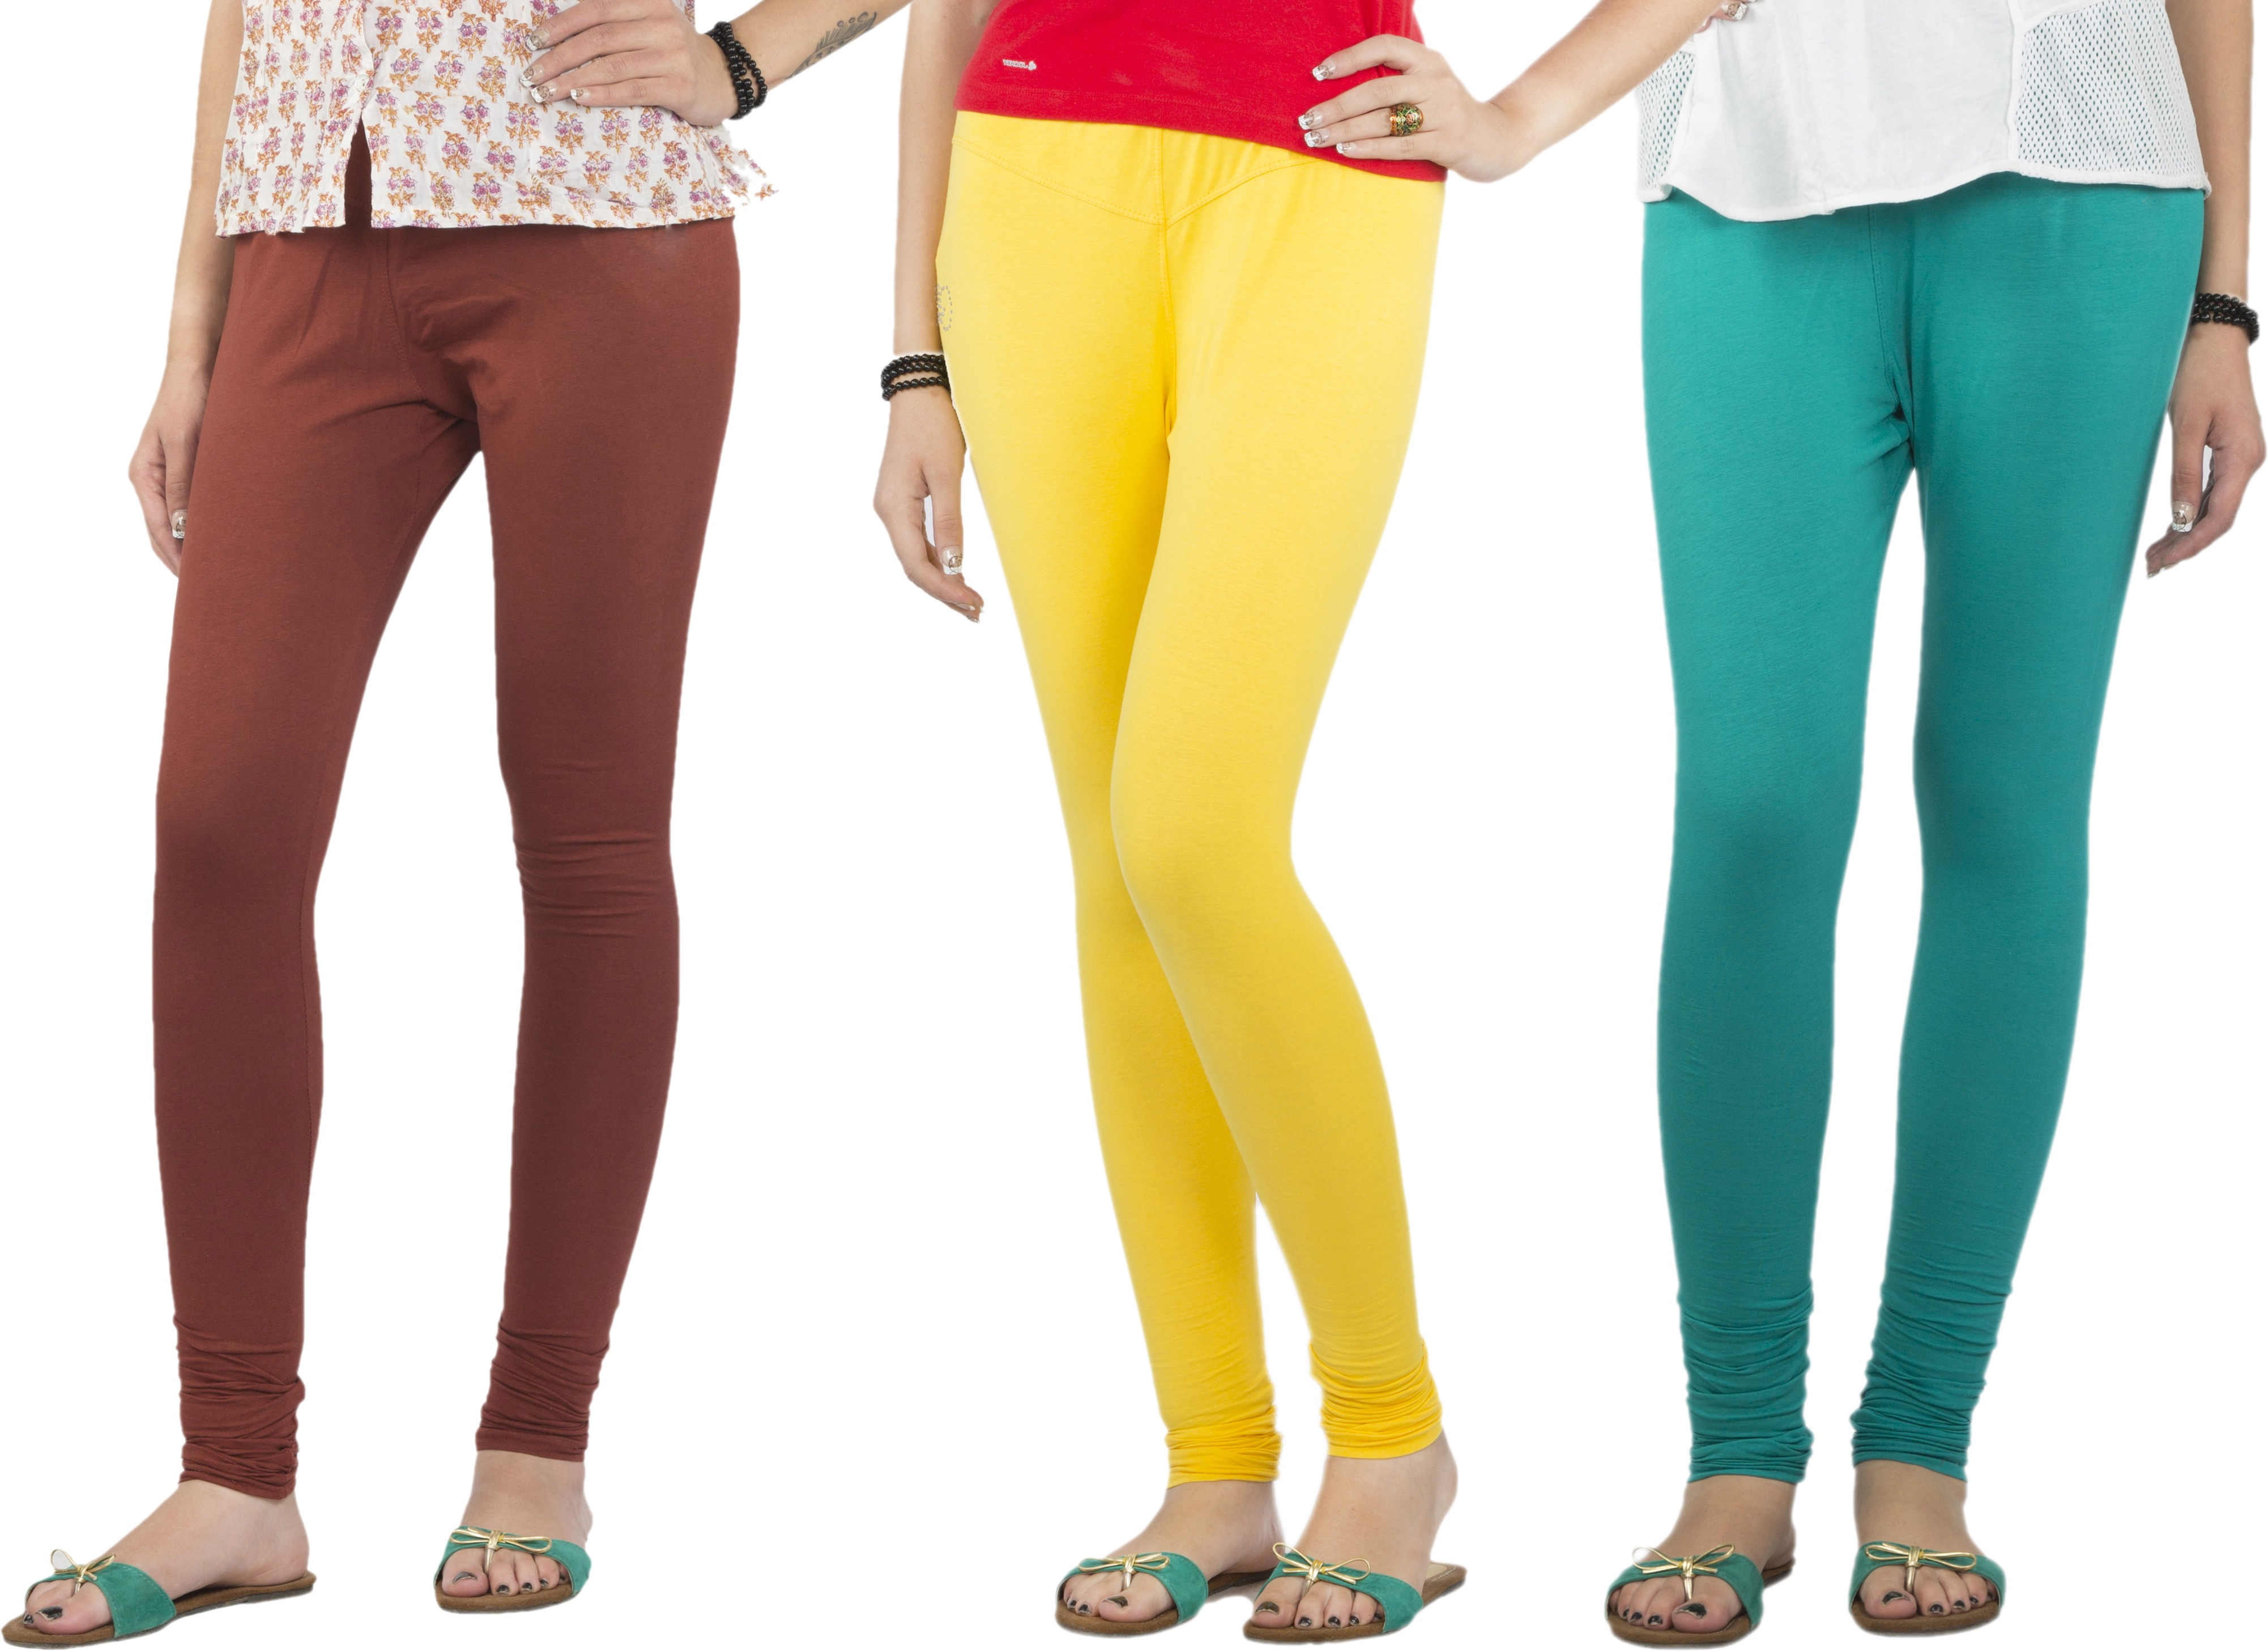 Jublee Womens Brown, Yellow, Green Leggings(Pack of 3)